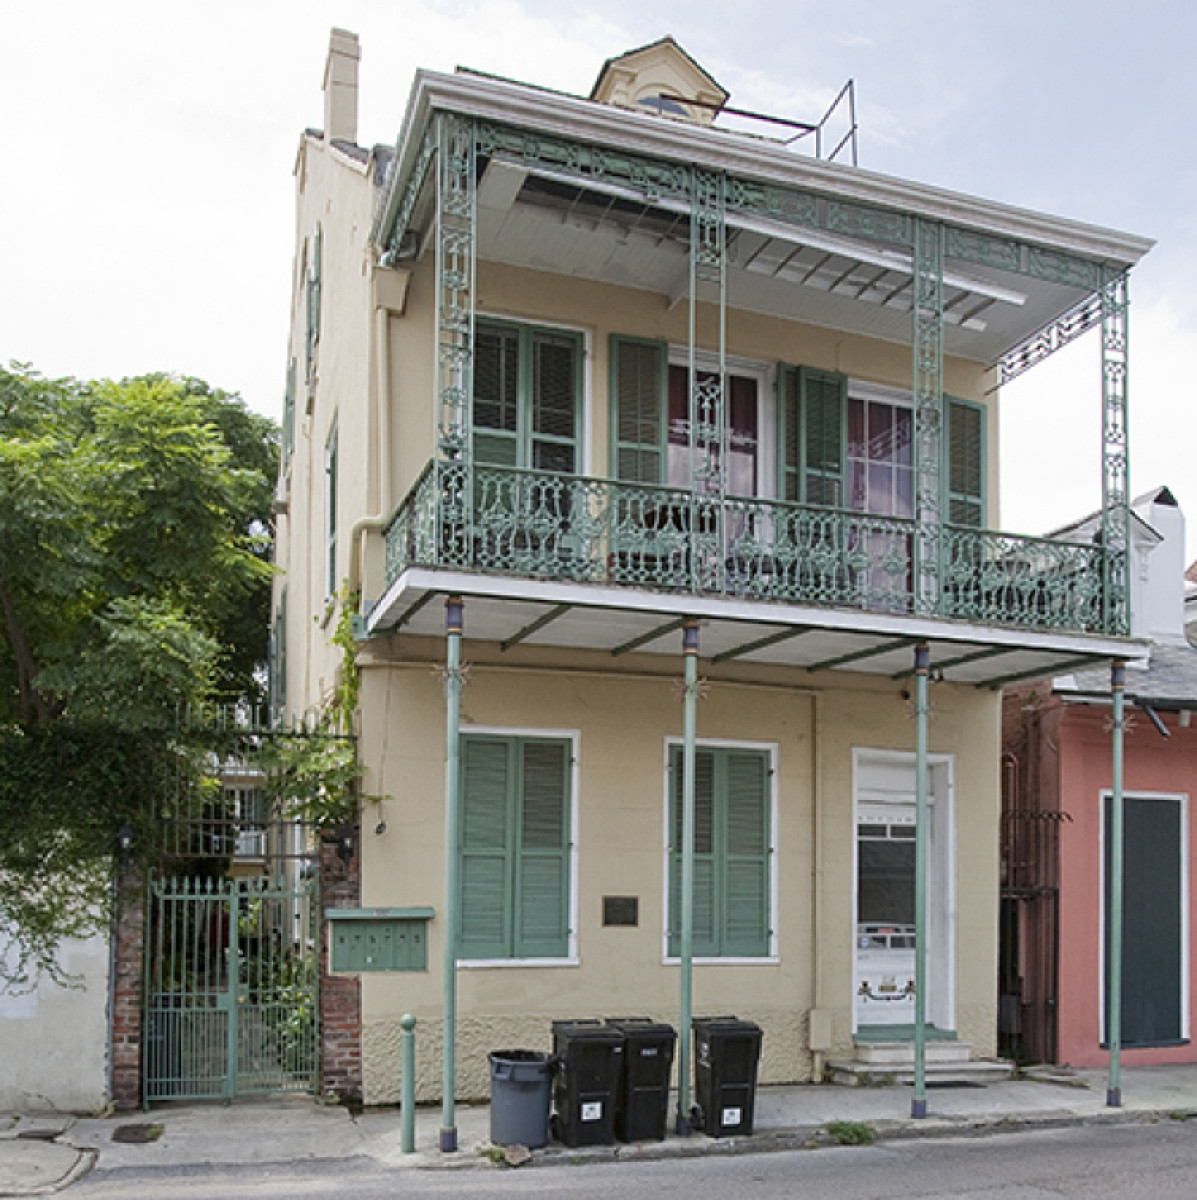 tennessee williams new orleans the city that was his muse later in his life tennessee williams owned the 19th century townhouse at 1014 dumaine